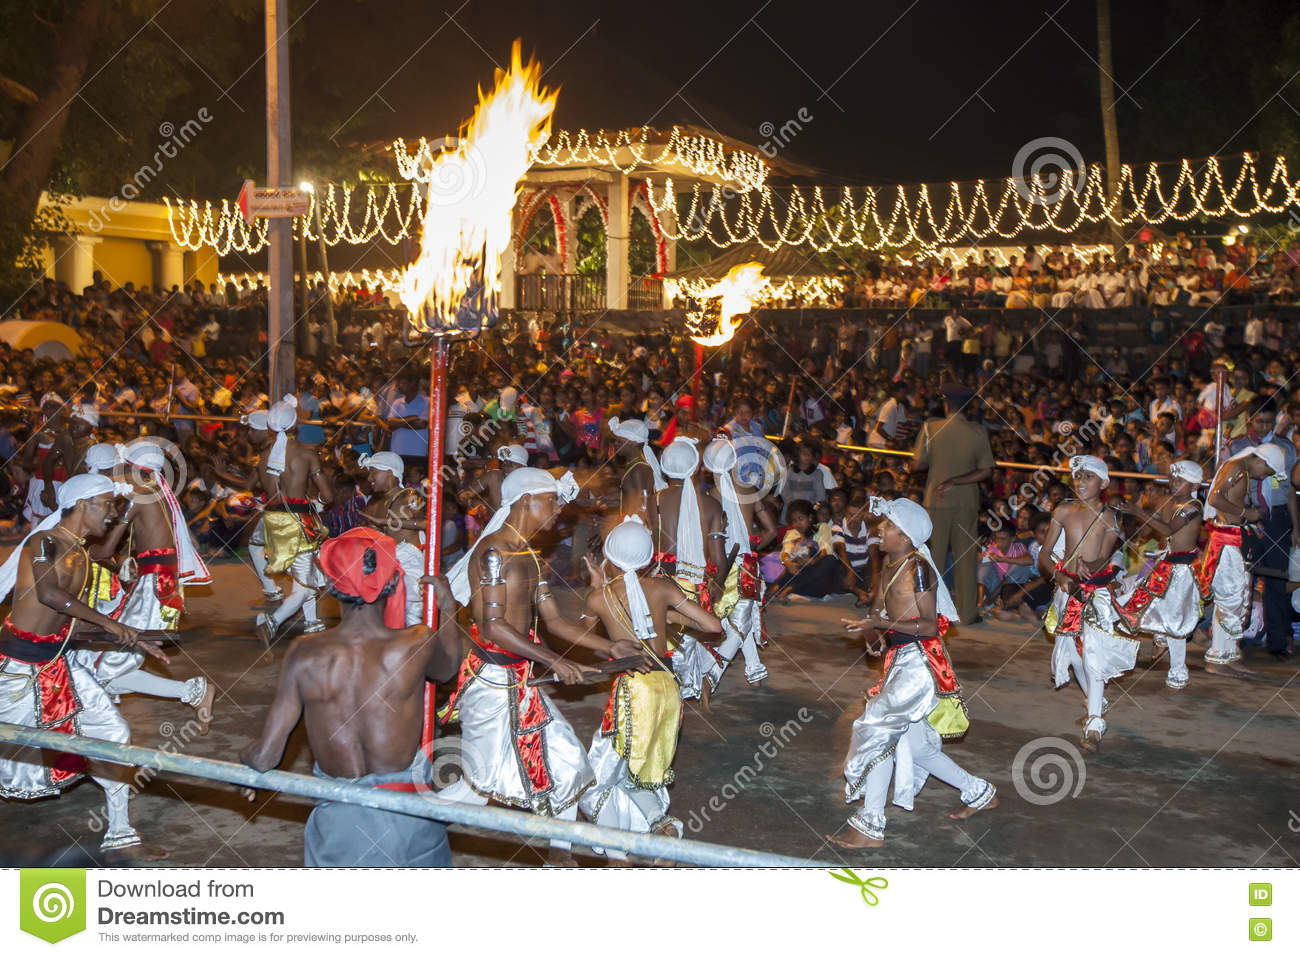 Pathuru Dancers perform in front of a huge crowd at the Esala Perahera in Kandy, Sri Lanka.